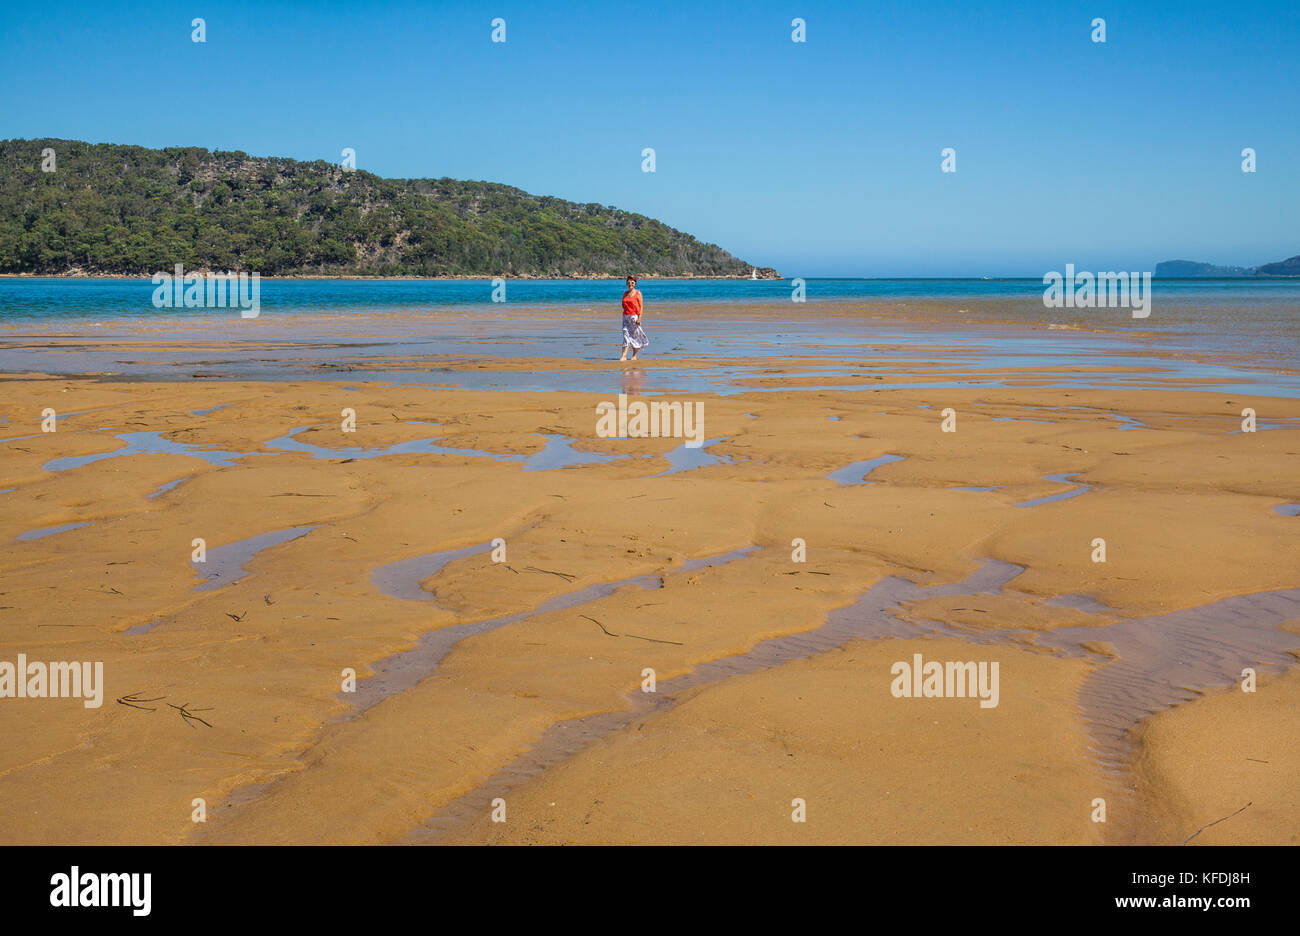 Australia New South Wales Central Coast Broken Bay Sandbar At Umina Beach At Low Tide Against The Backdrop Of The Bouddi Peninsula